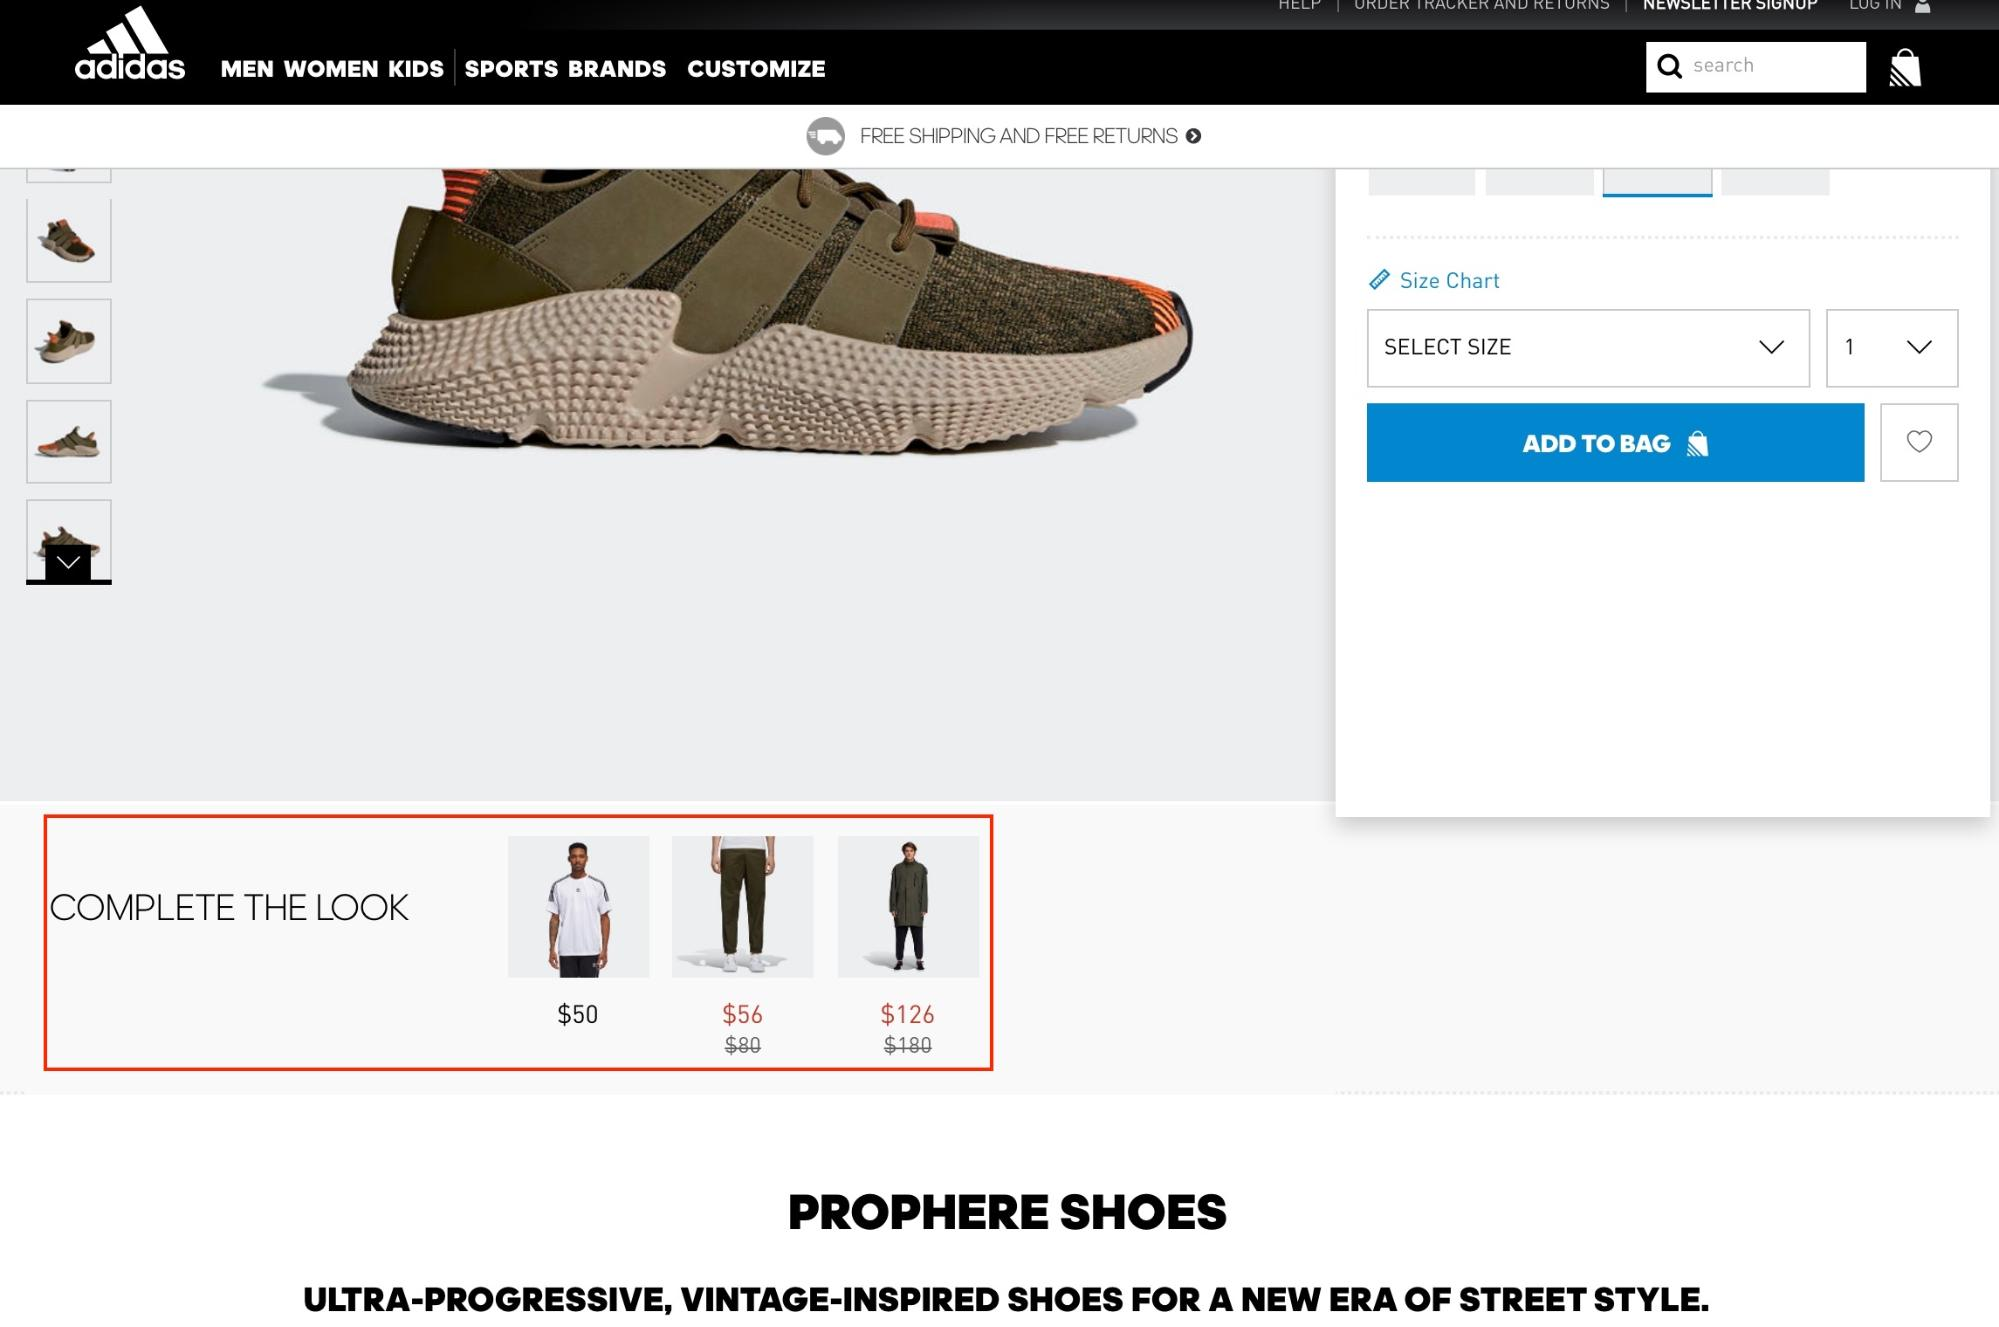 Screenshot showing a product page on adidas